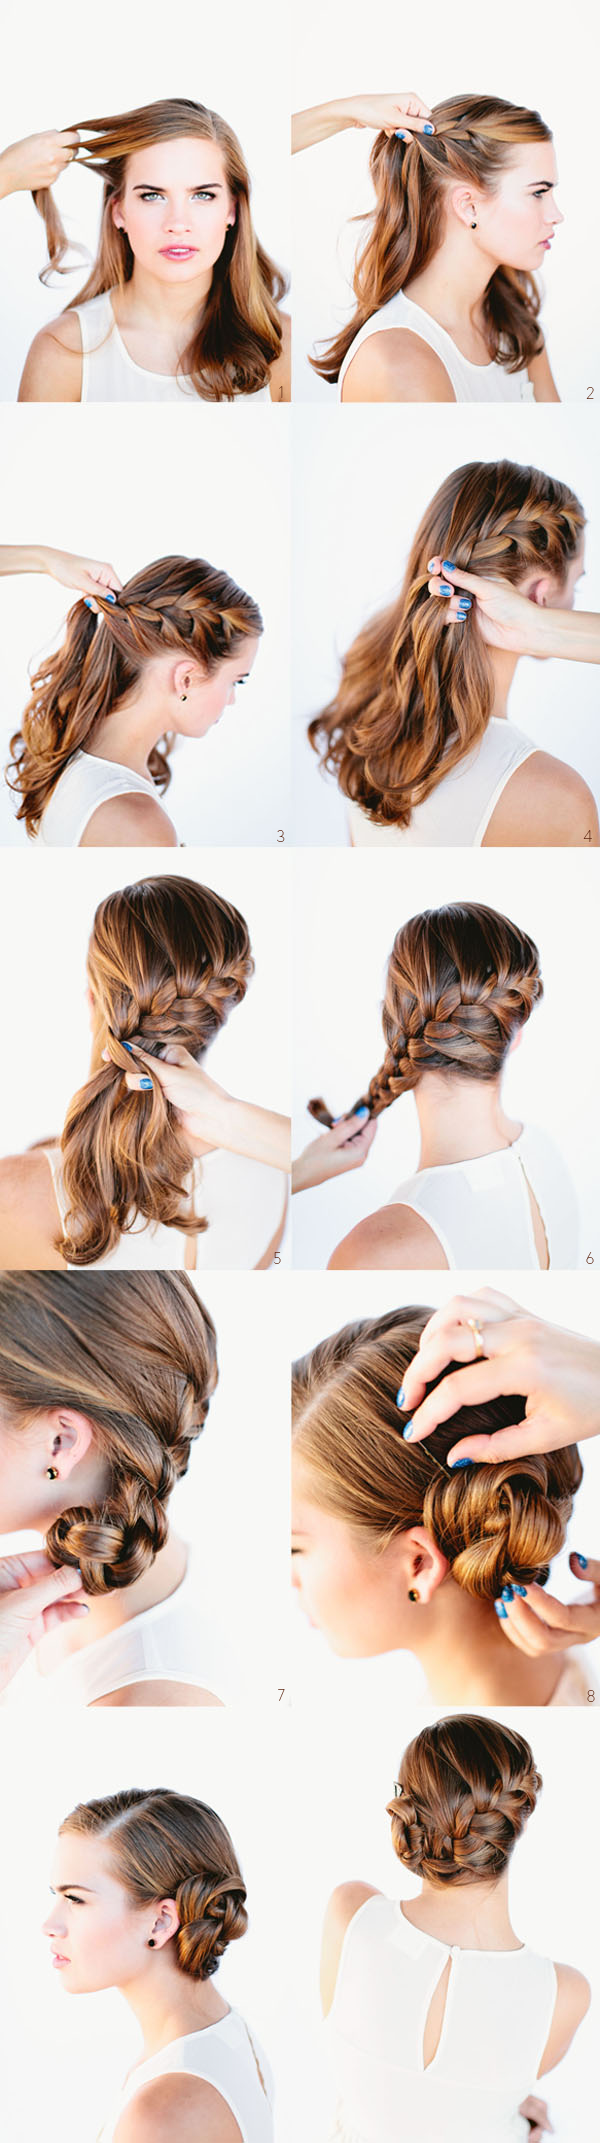 Brilliant Diy Wedding Hairstyle Topy Tail Twisted Updo Diy Wedding Hairstyles